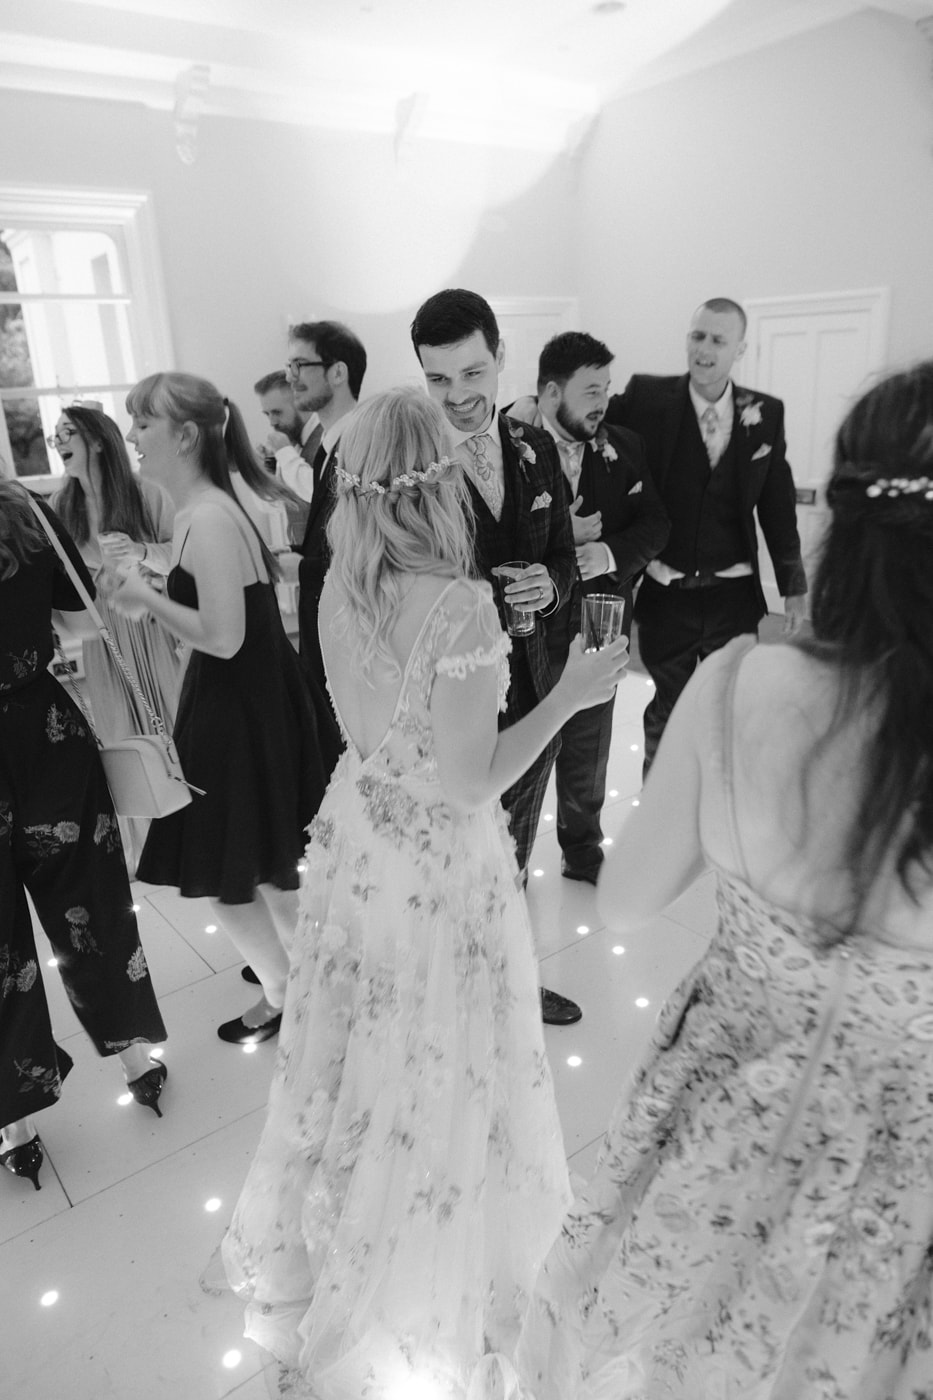 Guests, Bride and Groom Together Dancing at Storrs Hall Wedding